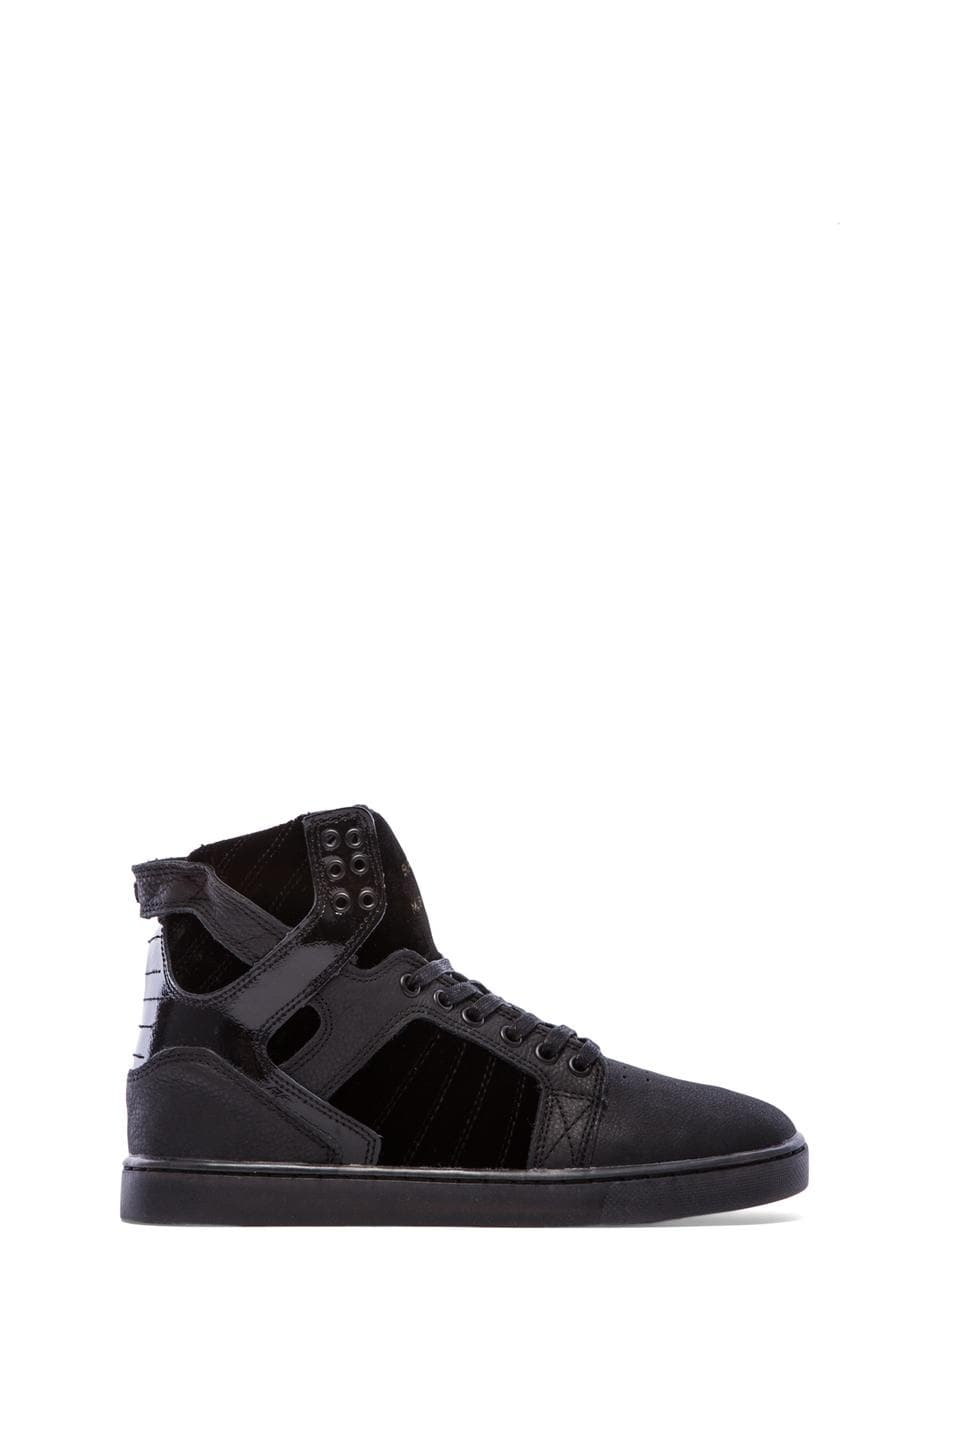 Supra Skytop LX in Black